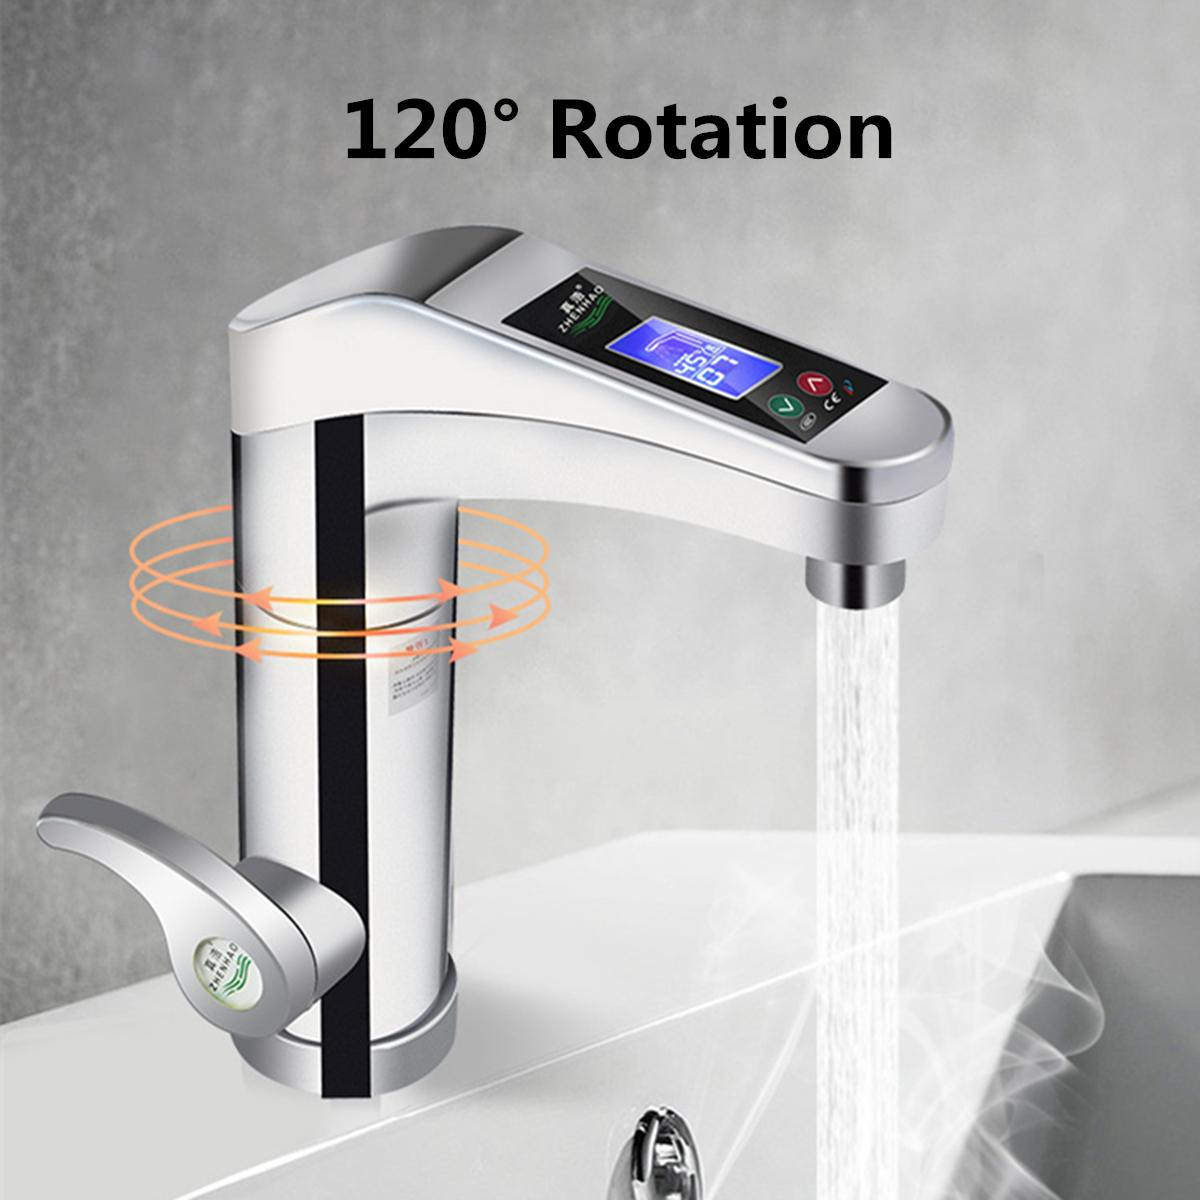 LED Electric Faucet Tap Hot Water Heater Instant Hot Cold Water Faucet Home Bathroom Kitchen Heating Supplies 220V 2 Colors